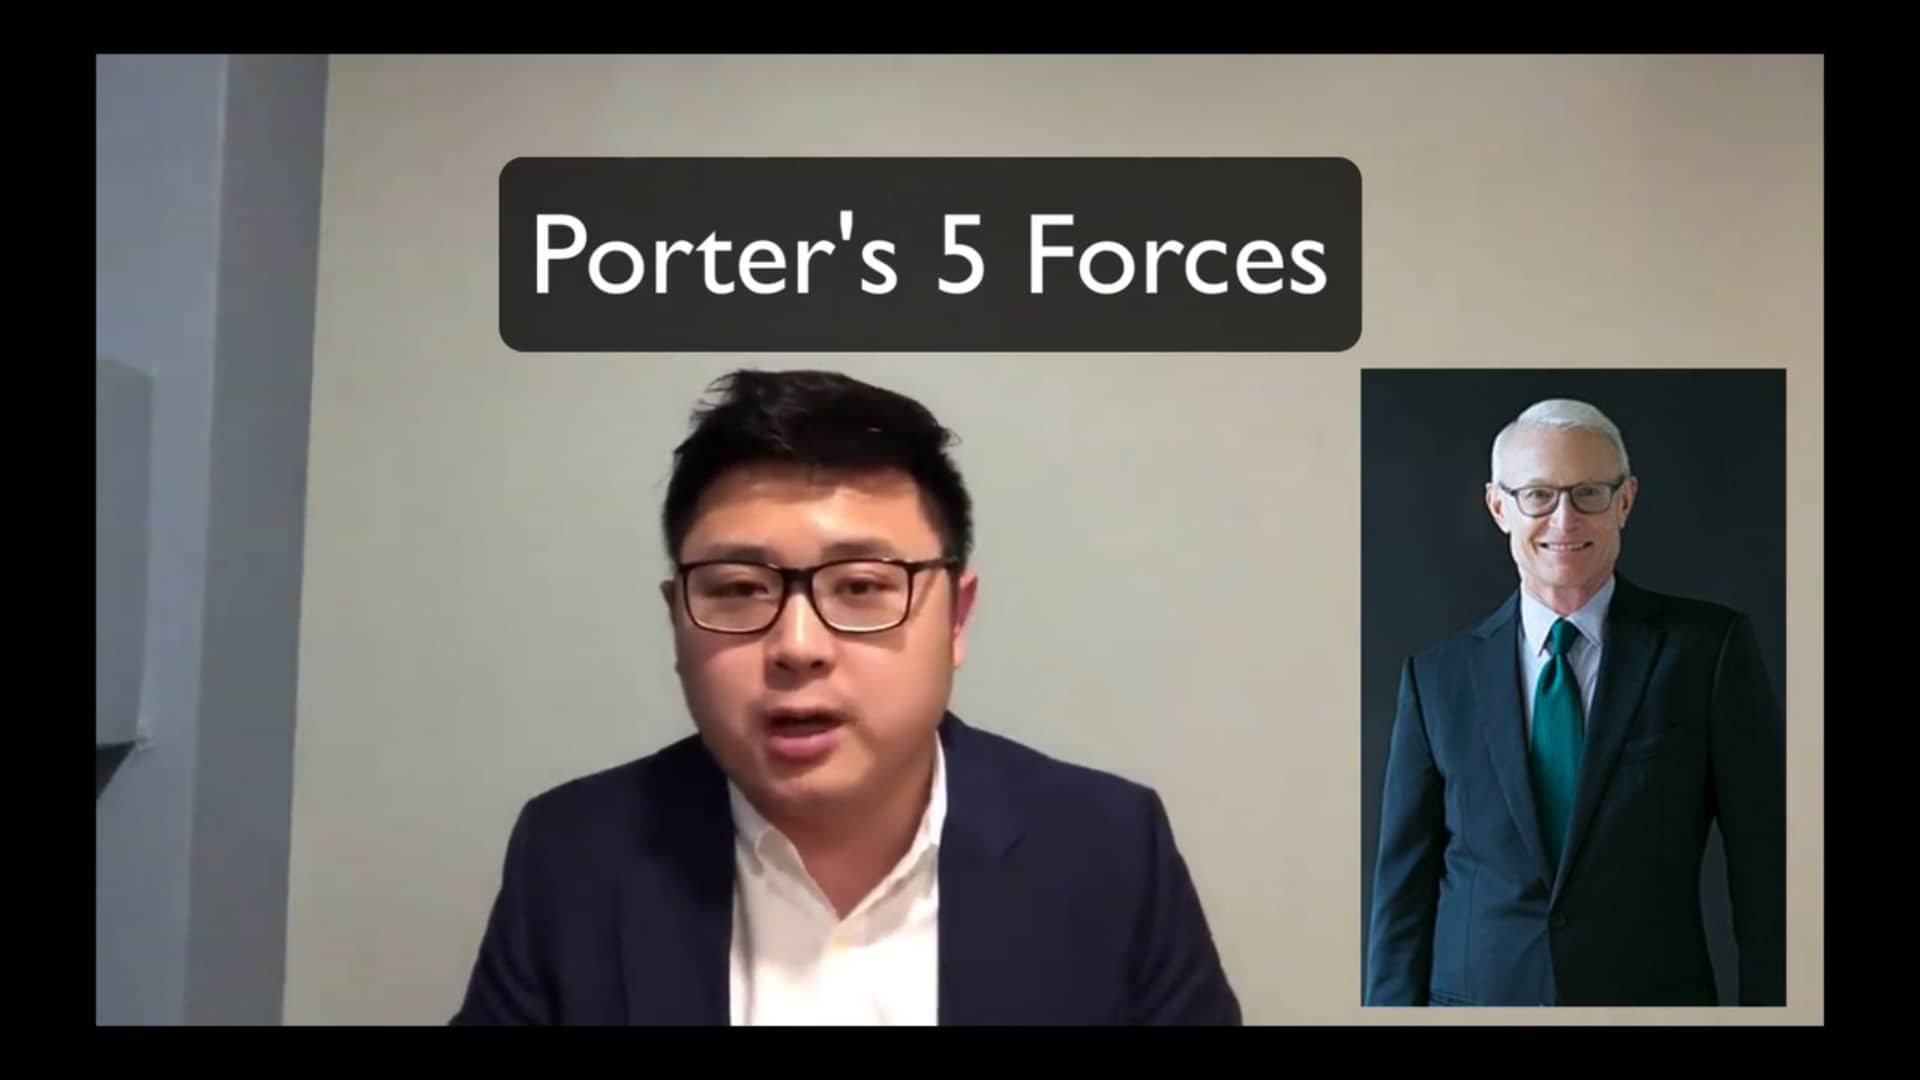 Porter's 5 forces BE13